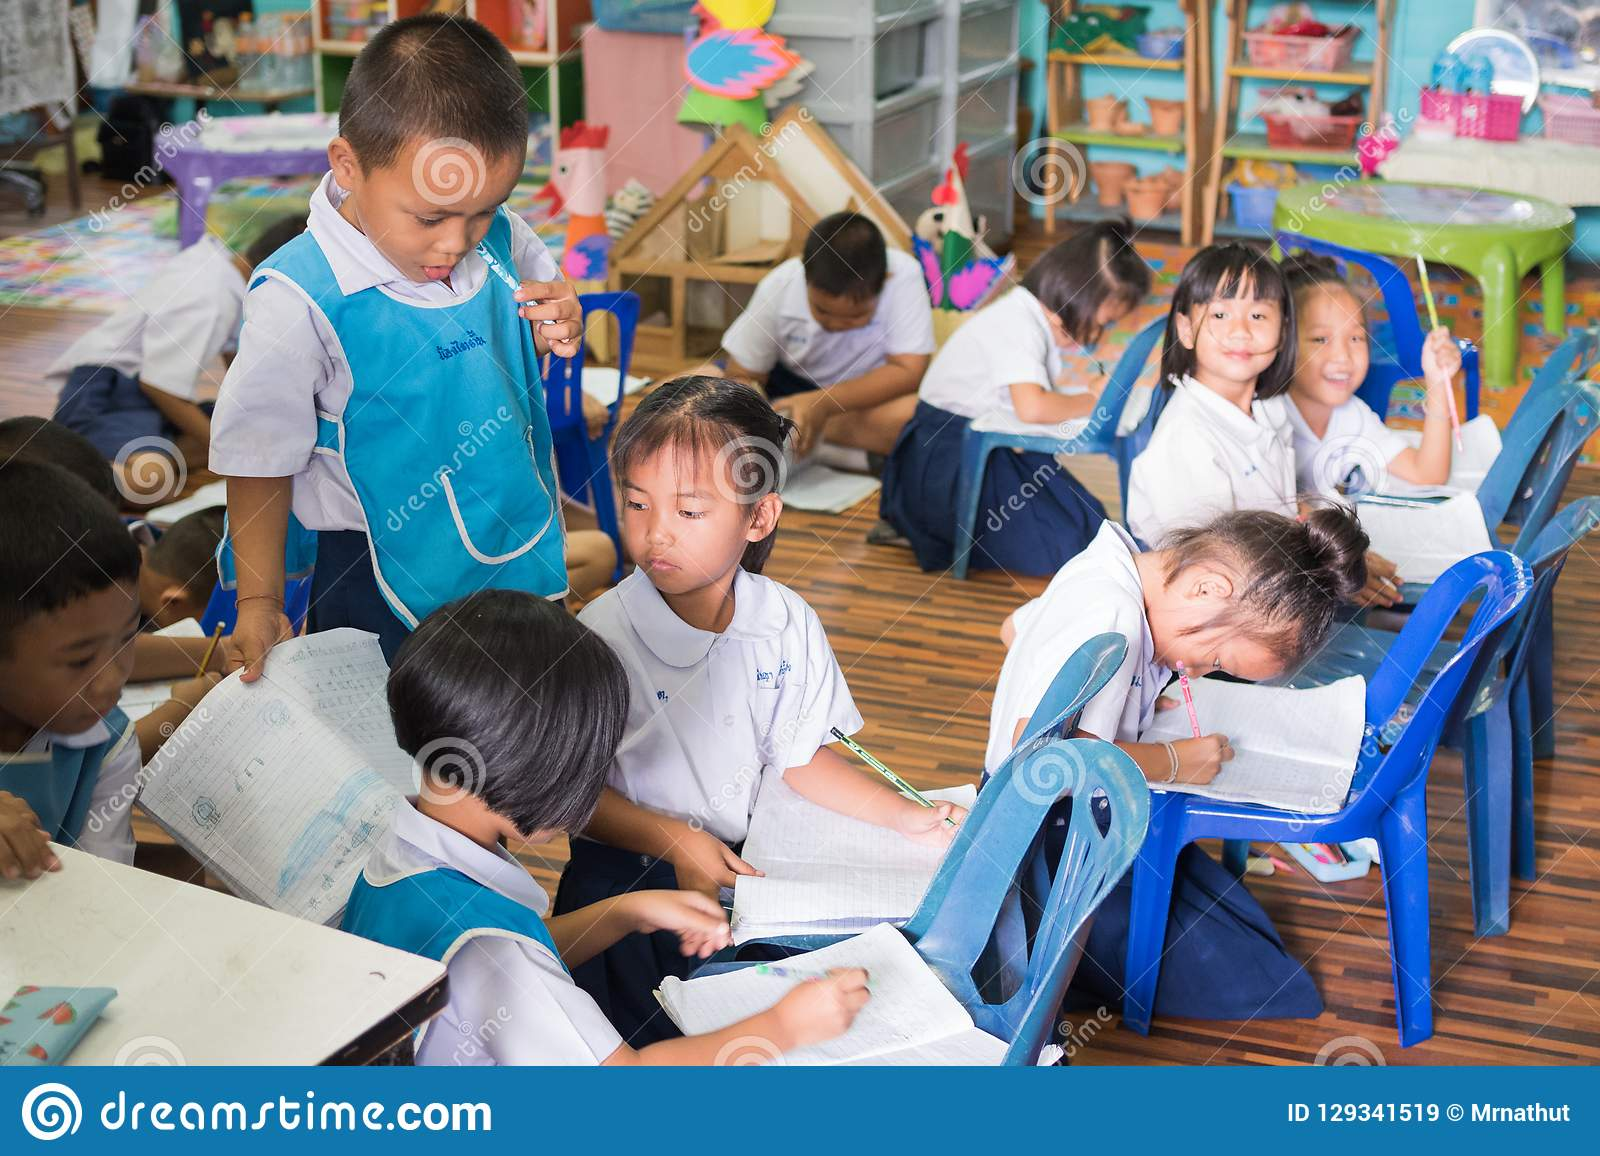 Kids studying in the classroom